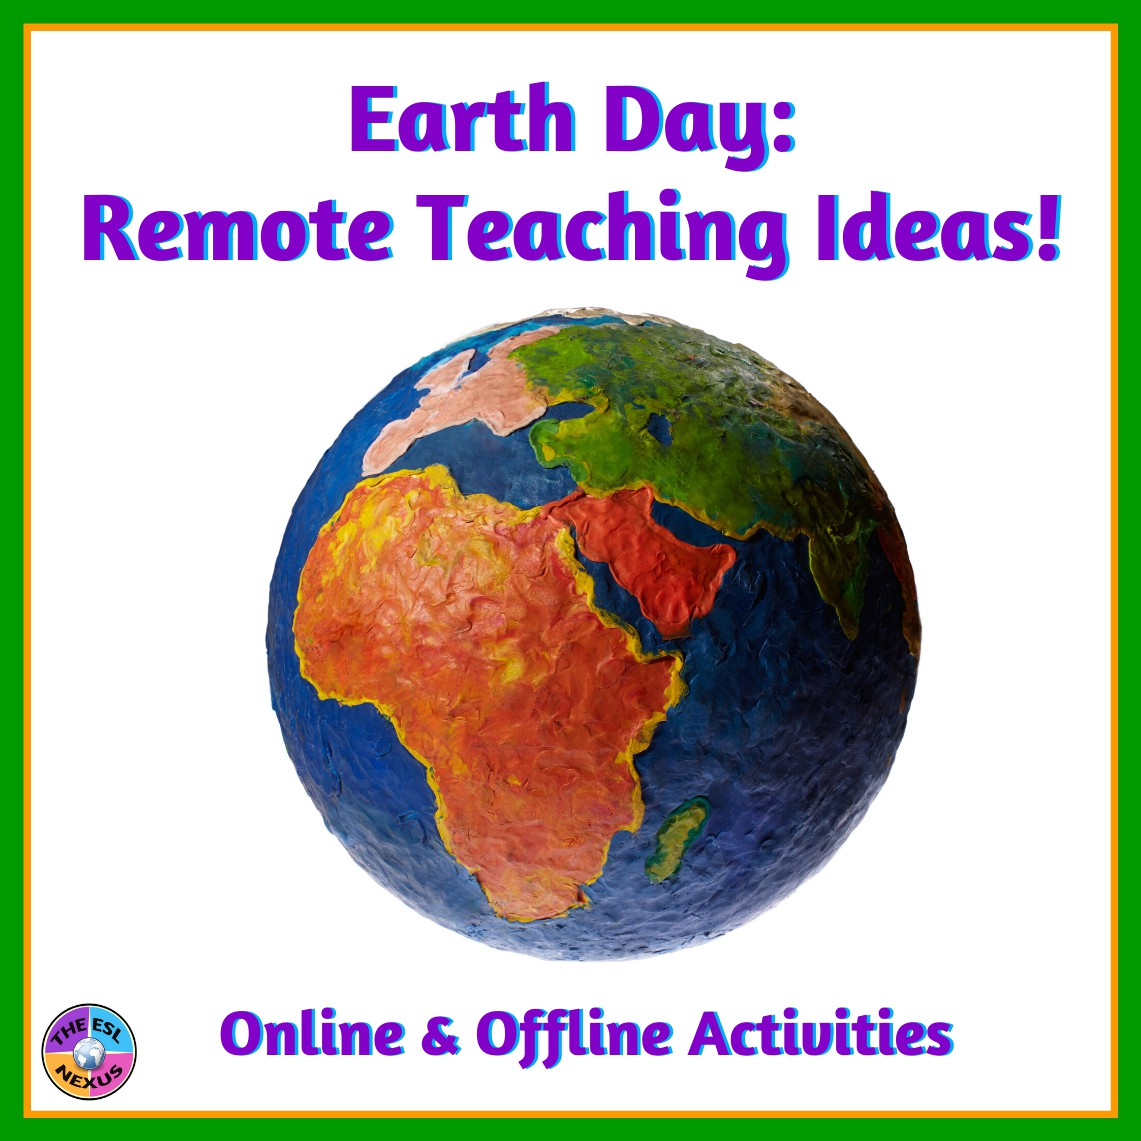 Find ideas for online & offline activities for teaching about Earth Day and the environment in this blog post. Links to other blog posts about the environment also included. | The ESL Nexus